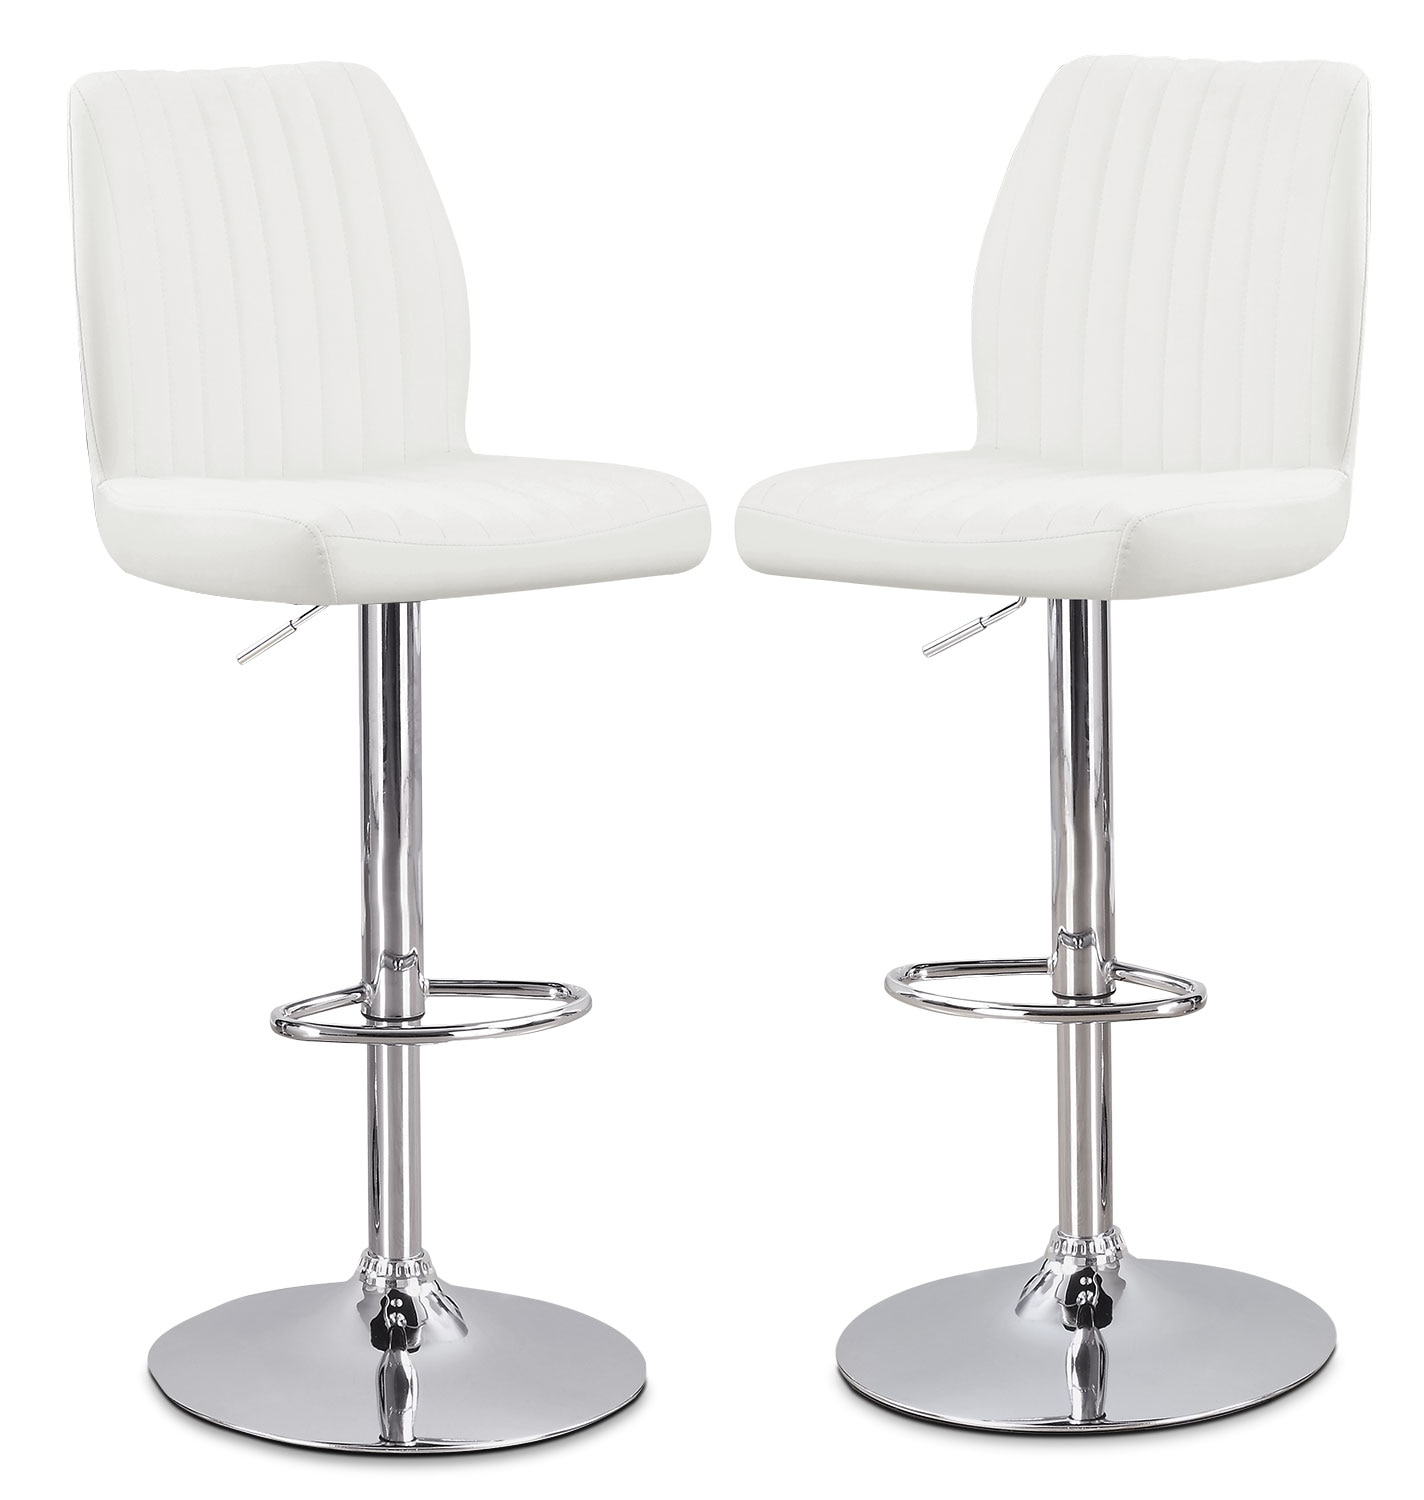 Dining Room Furniture - Monarch Adjustable Bar Stool, Set of 2 – White